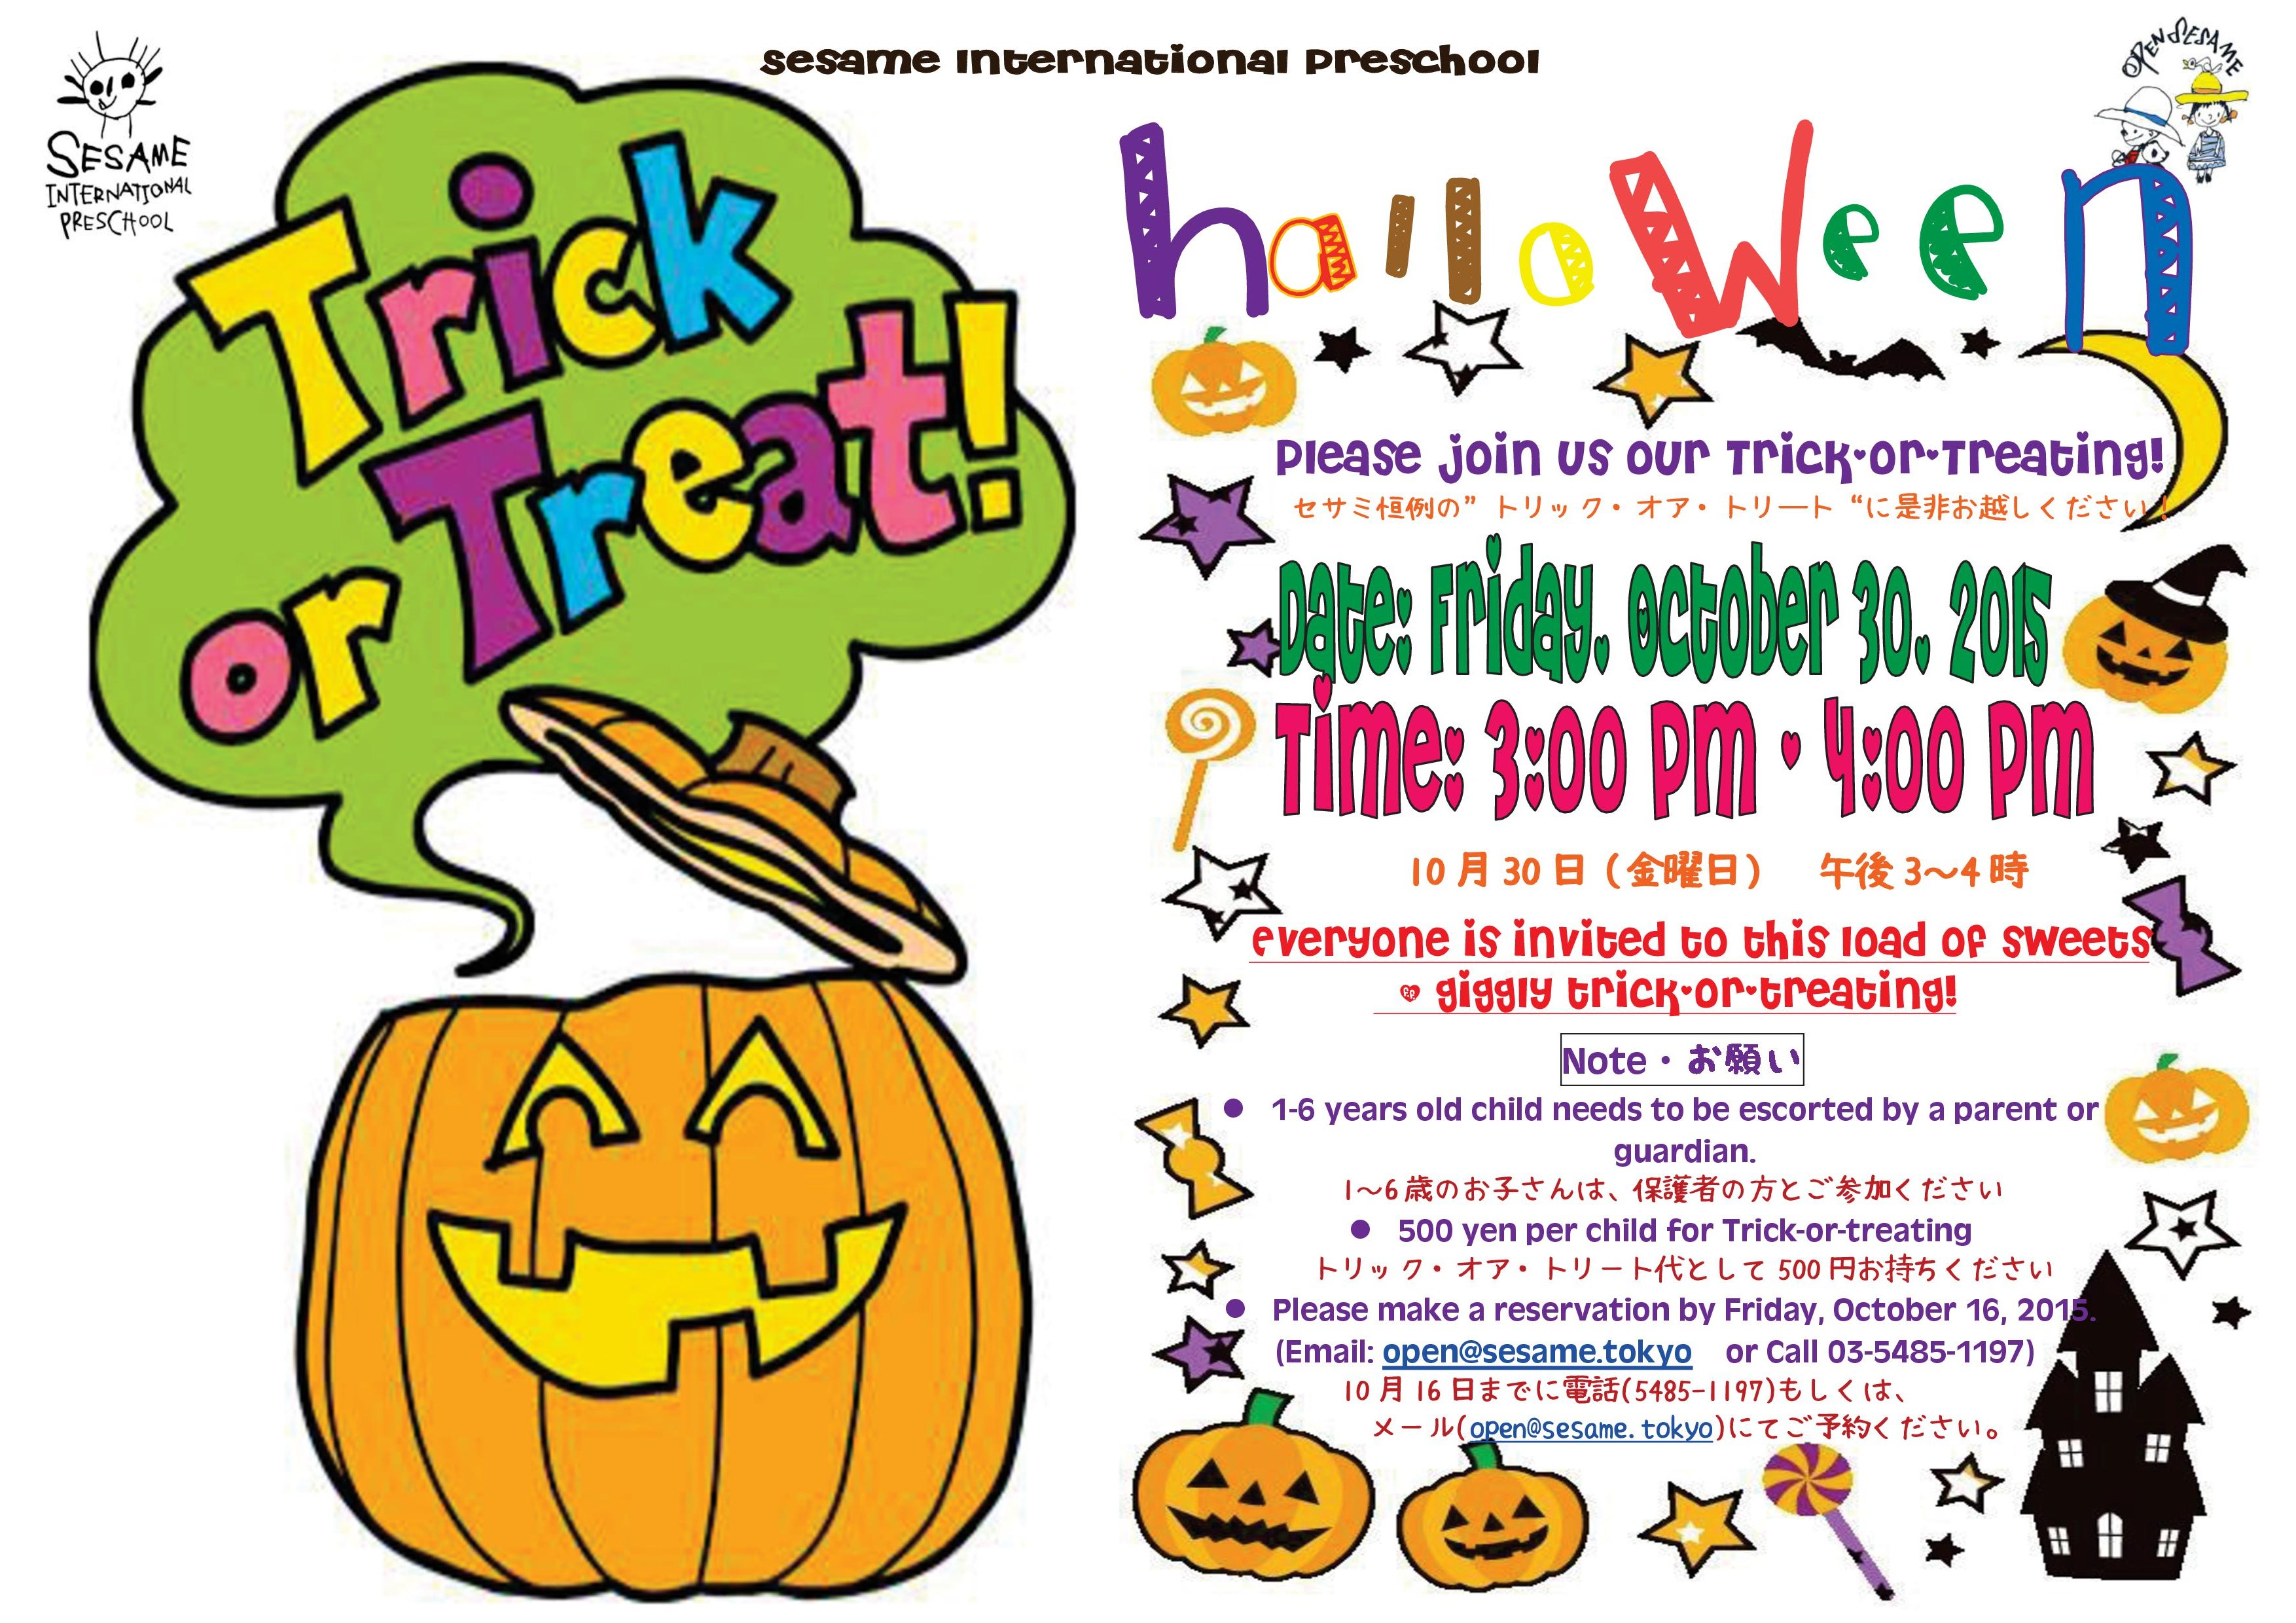 Trick-or-Treat information